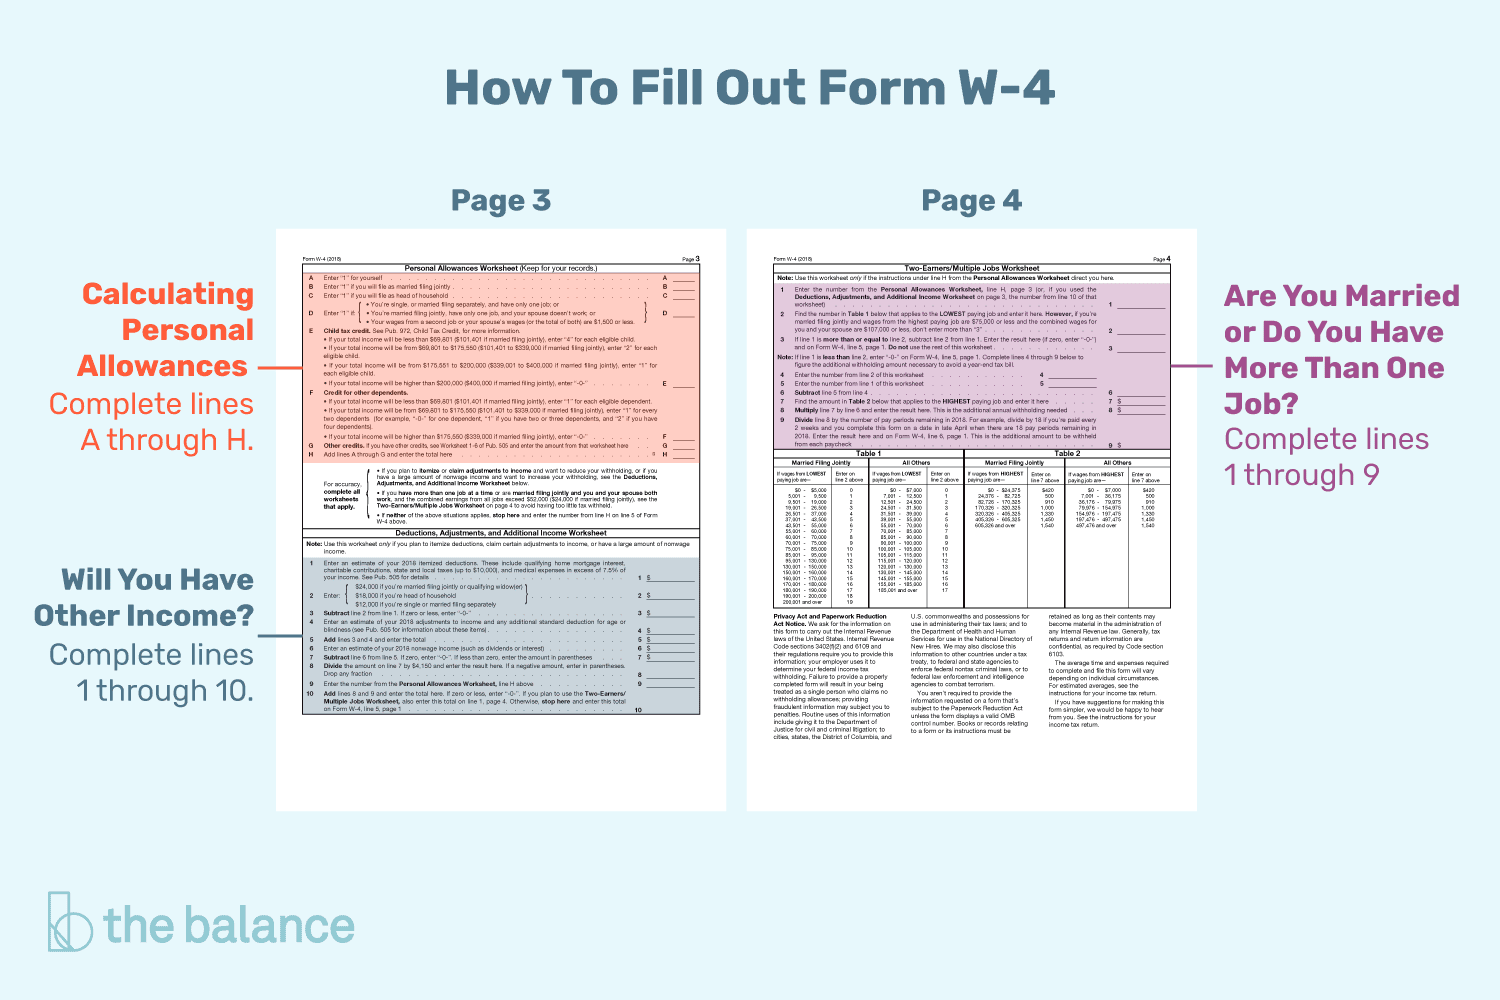 w2 form allowances  Tips for Calculating Allowances and Preparing Form W-13